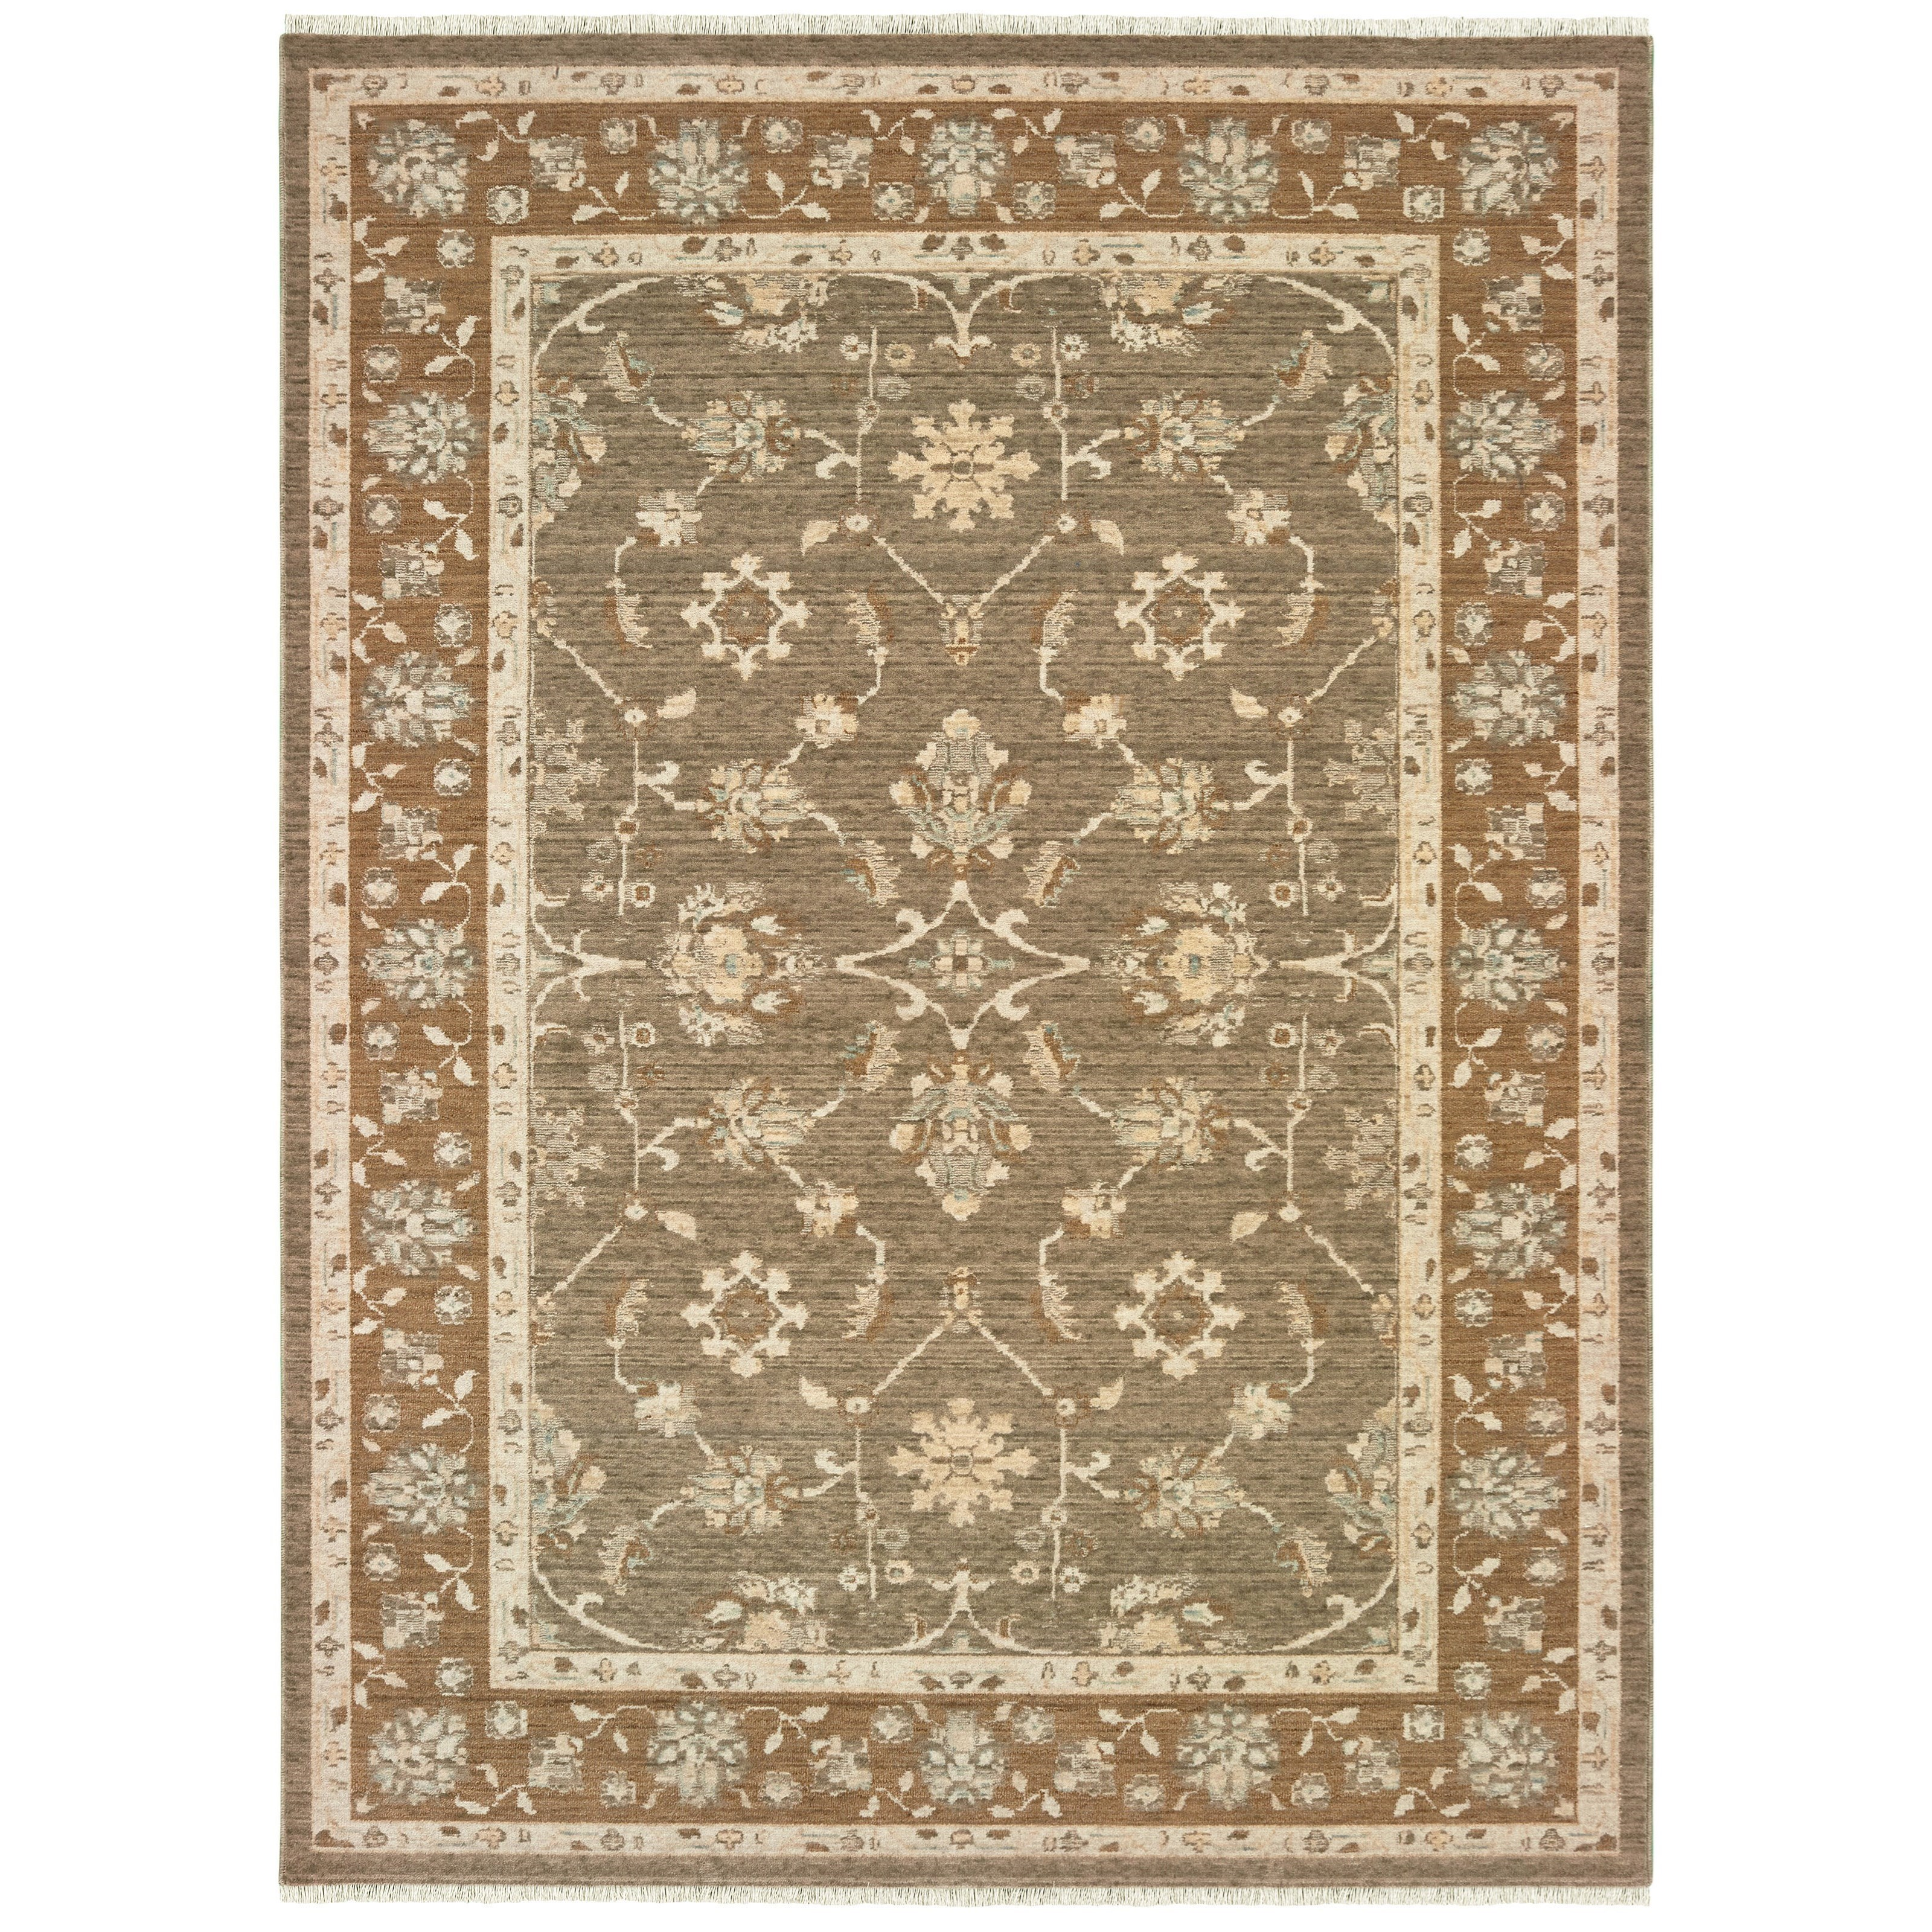 "Anatolia 3'10"" X  5' 5"" Rectangle Rug by Oriental Weavers at Darvin Furniture"